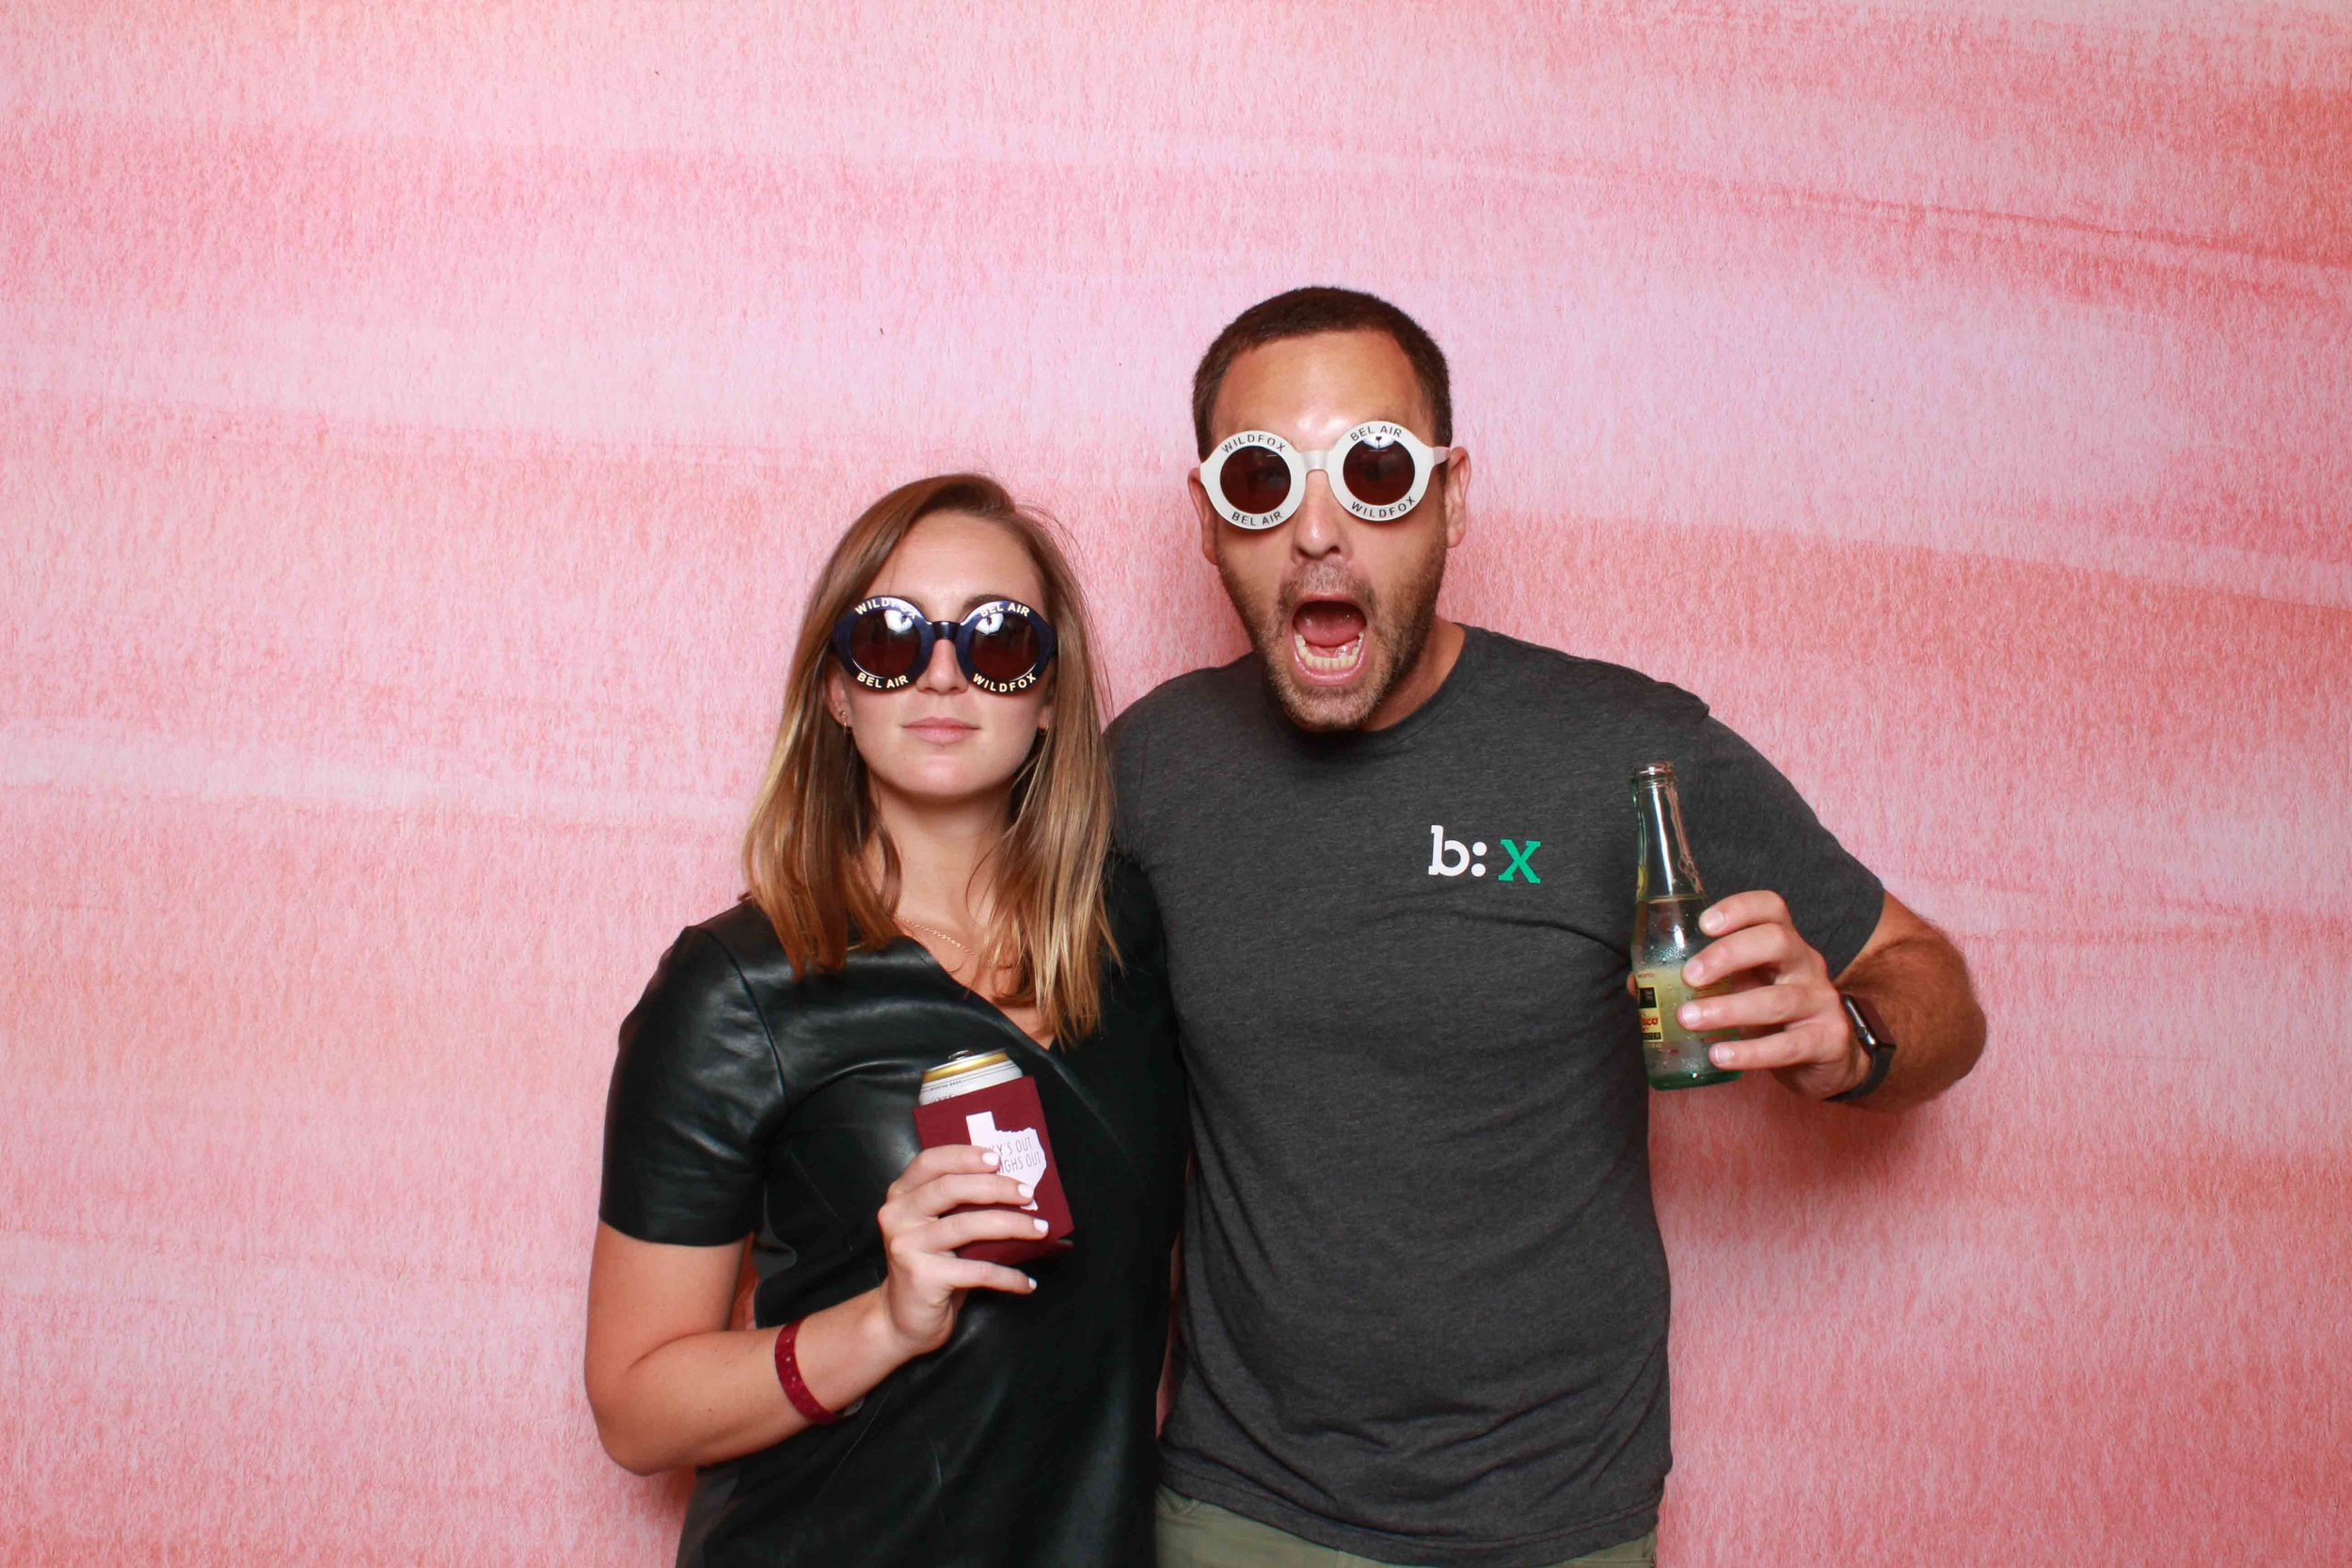 photo booth rental austin-39.jpg